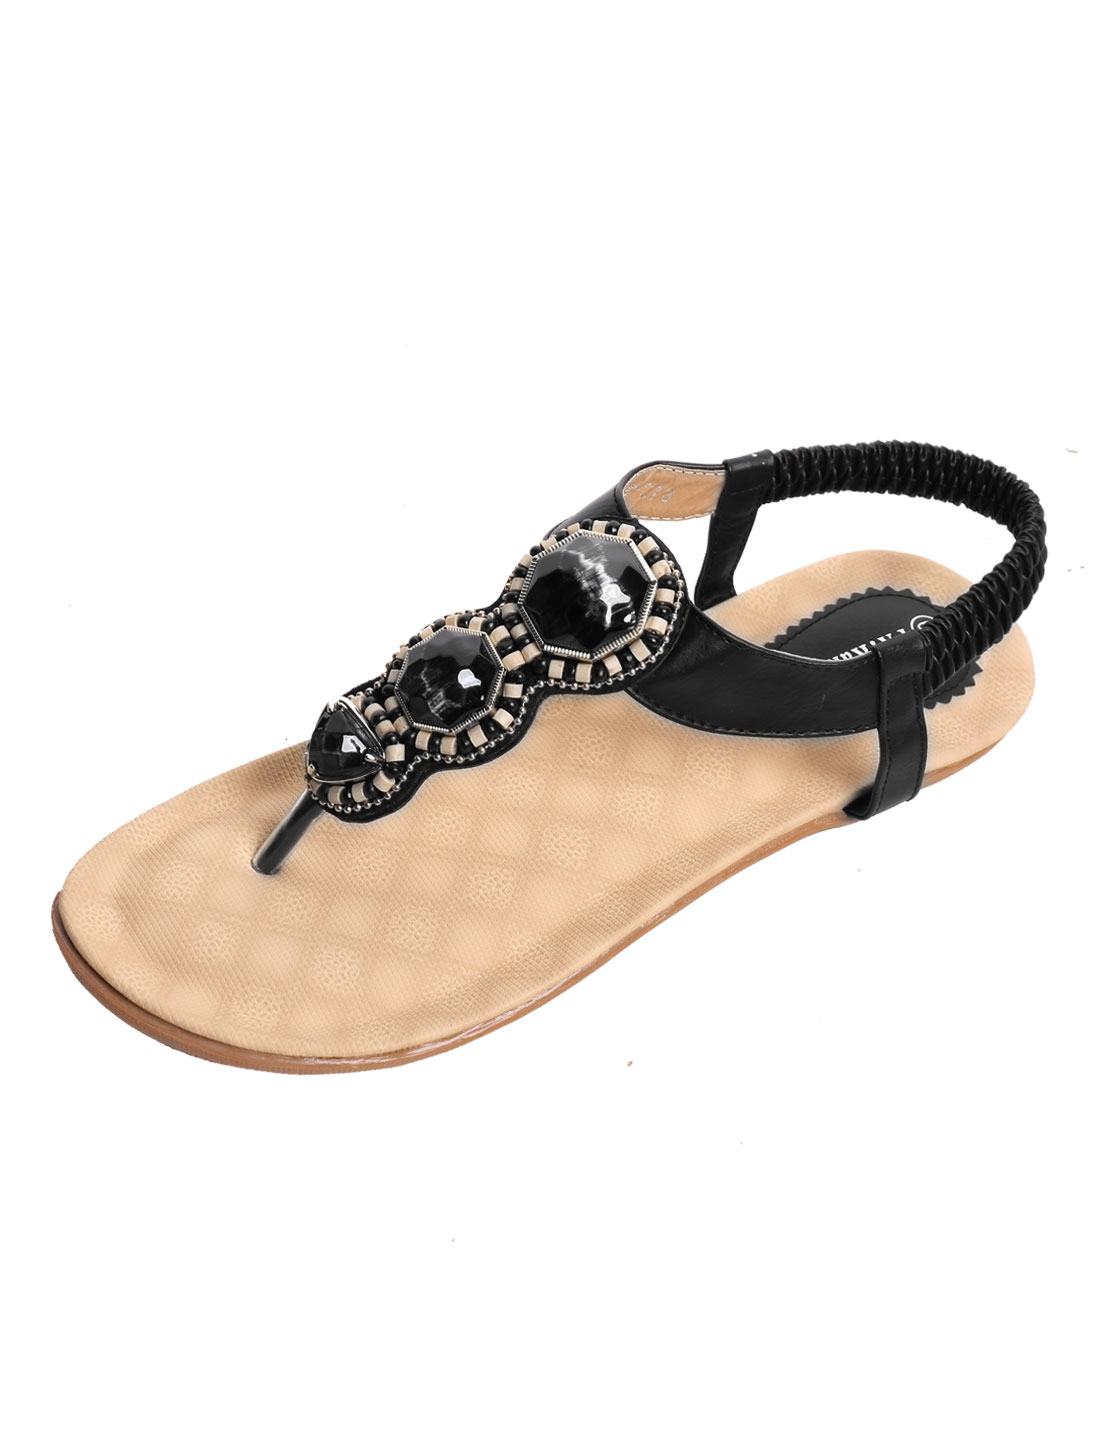 Women Diamante Upper Textured Outside Flat Sandals Black US 7.5